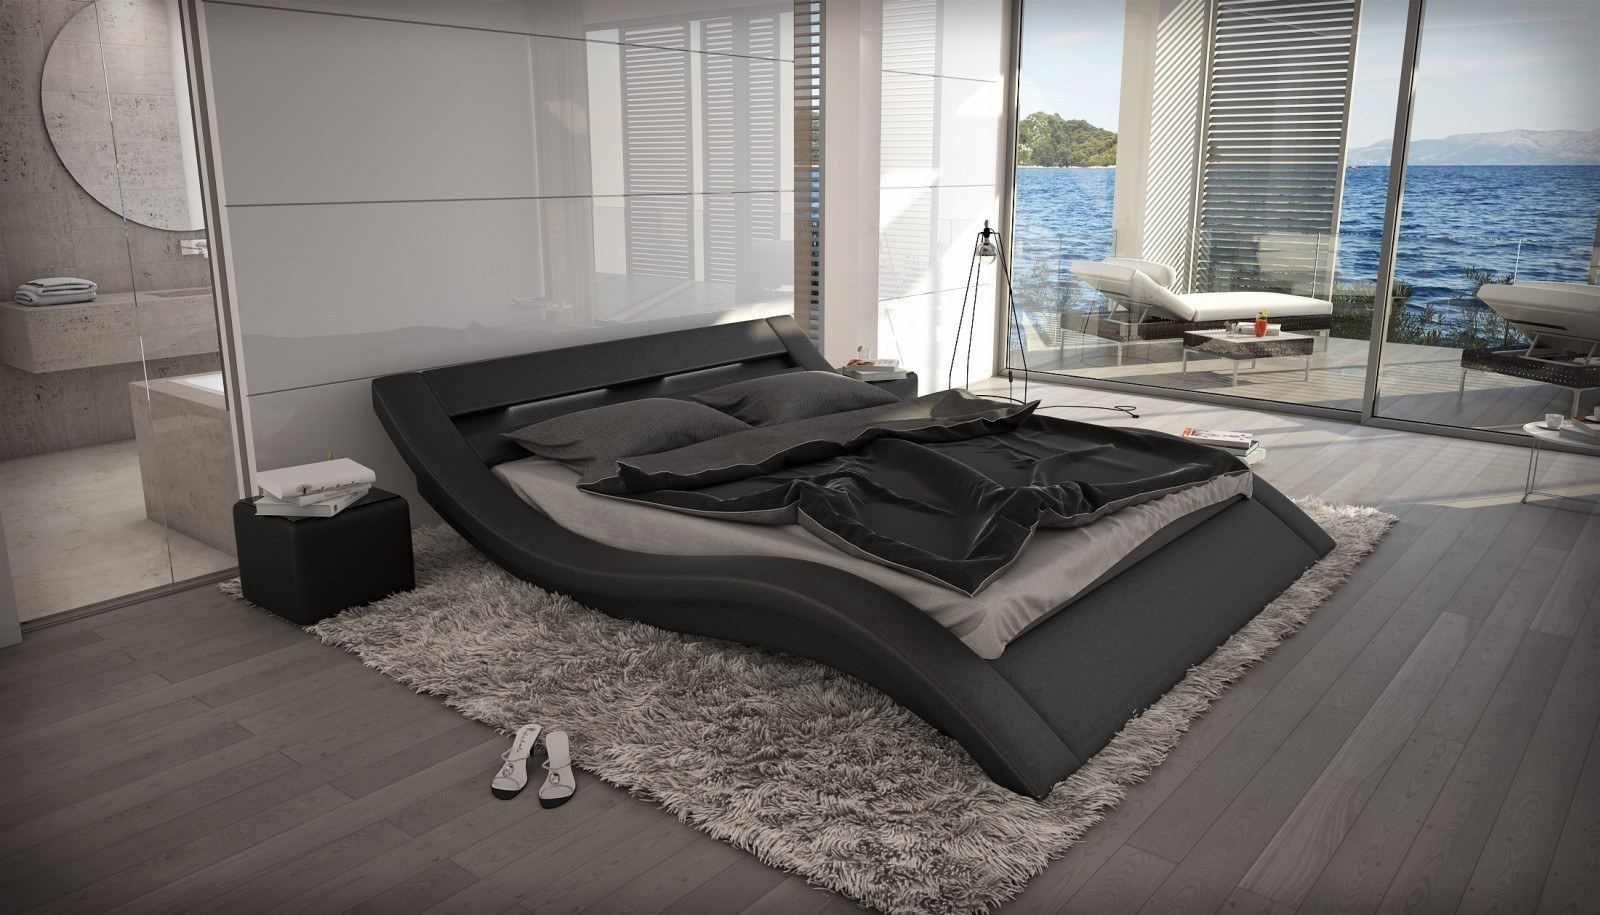 designerbett massa mit beleuchtung design polsterbett. Black Bedroom Furniture Sets. Home Design Ideas